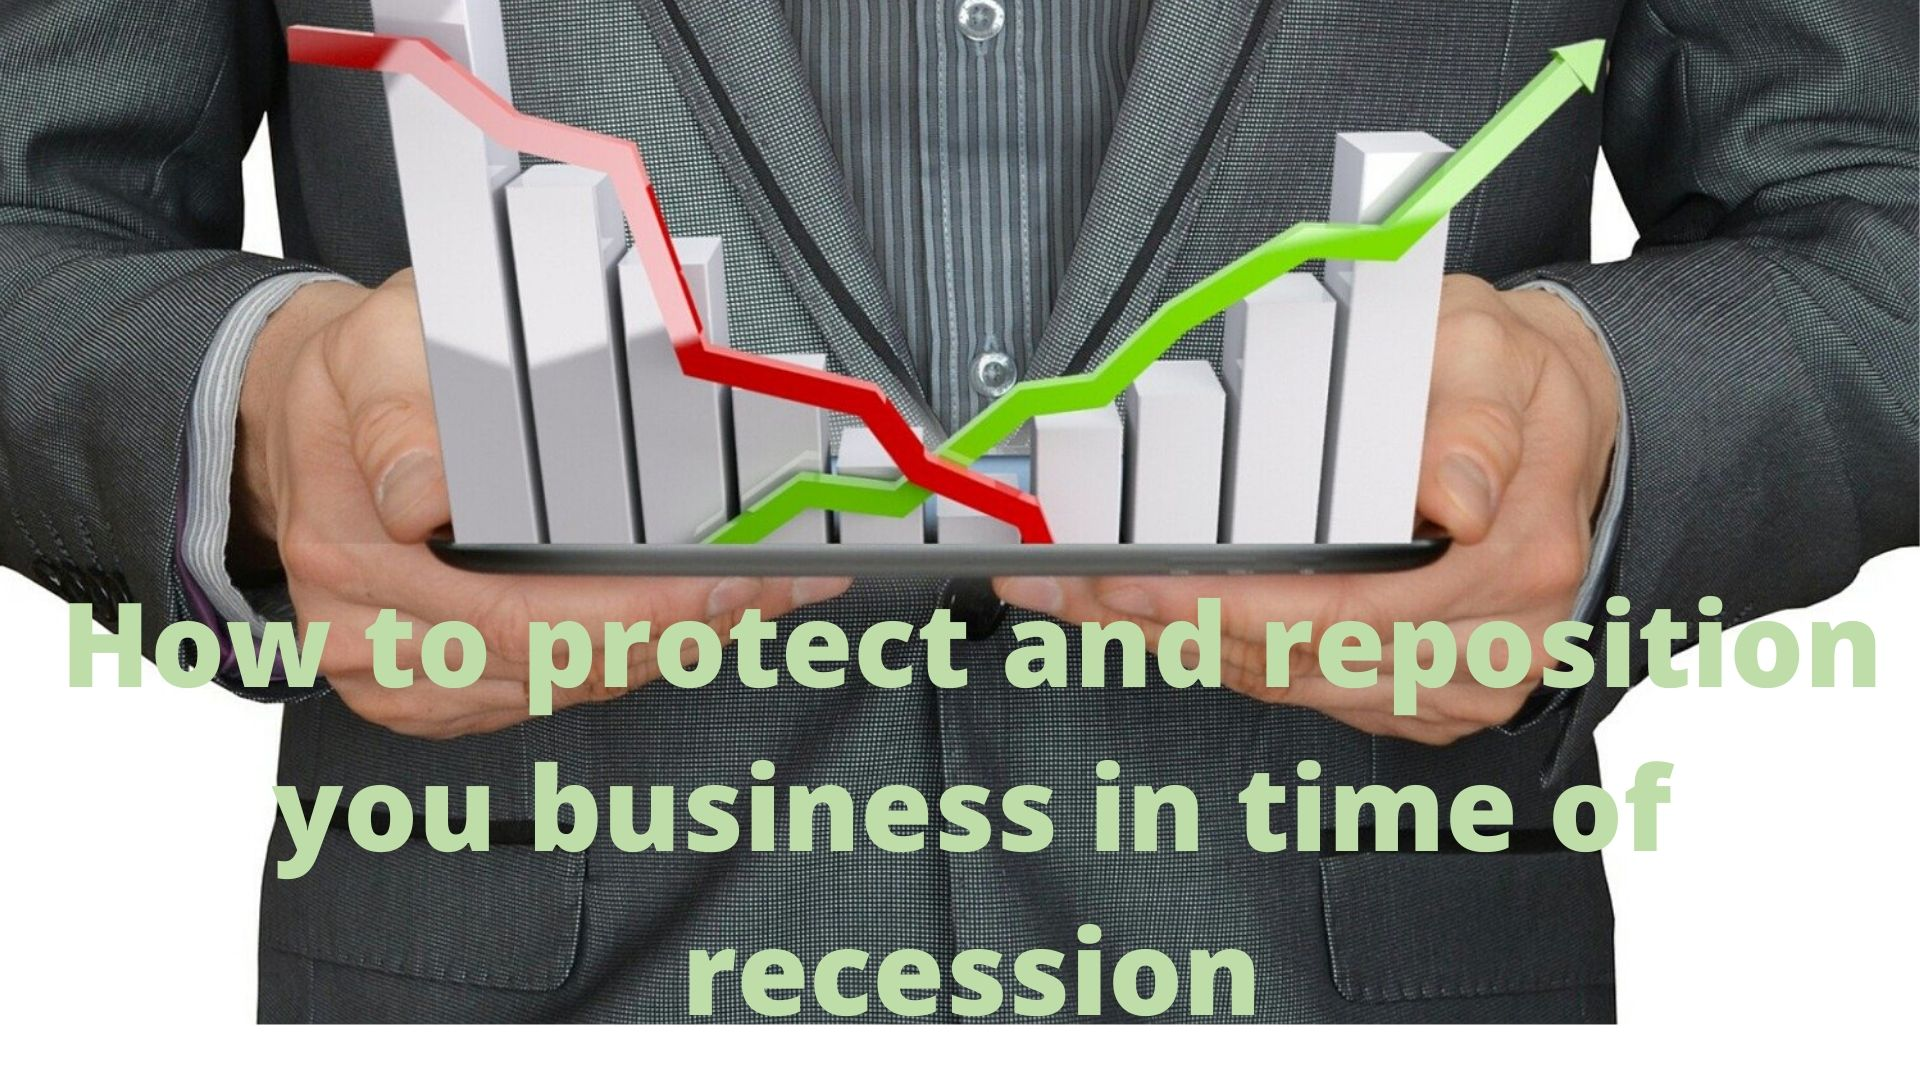 How to protect and reshape you business in time of recession